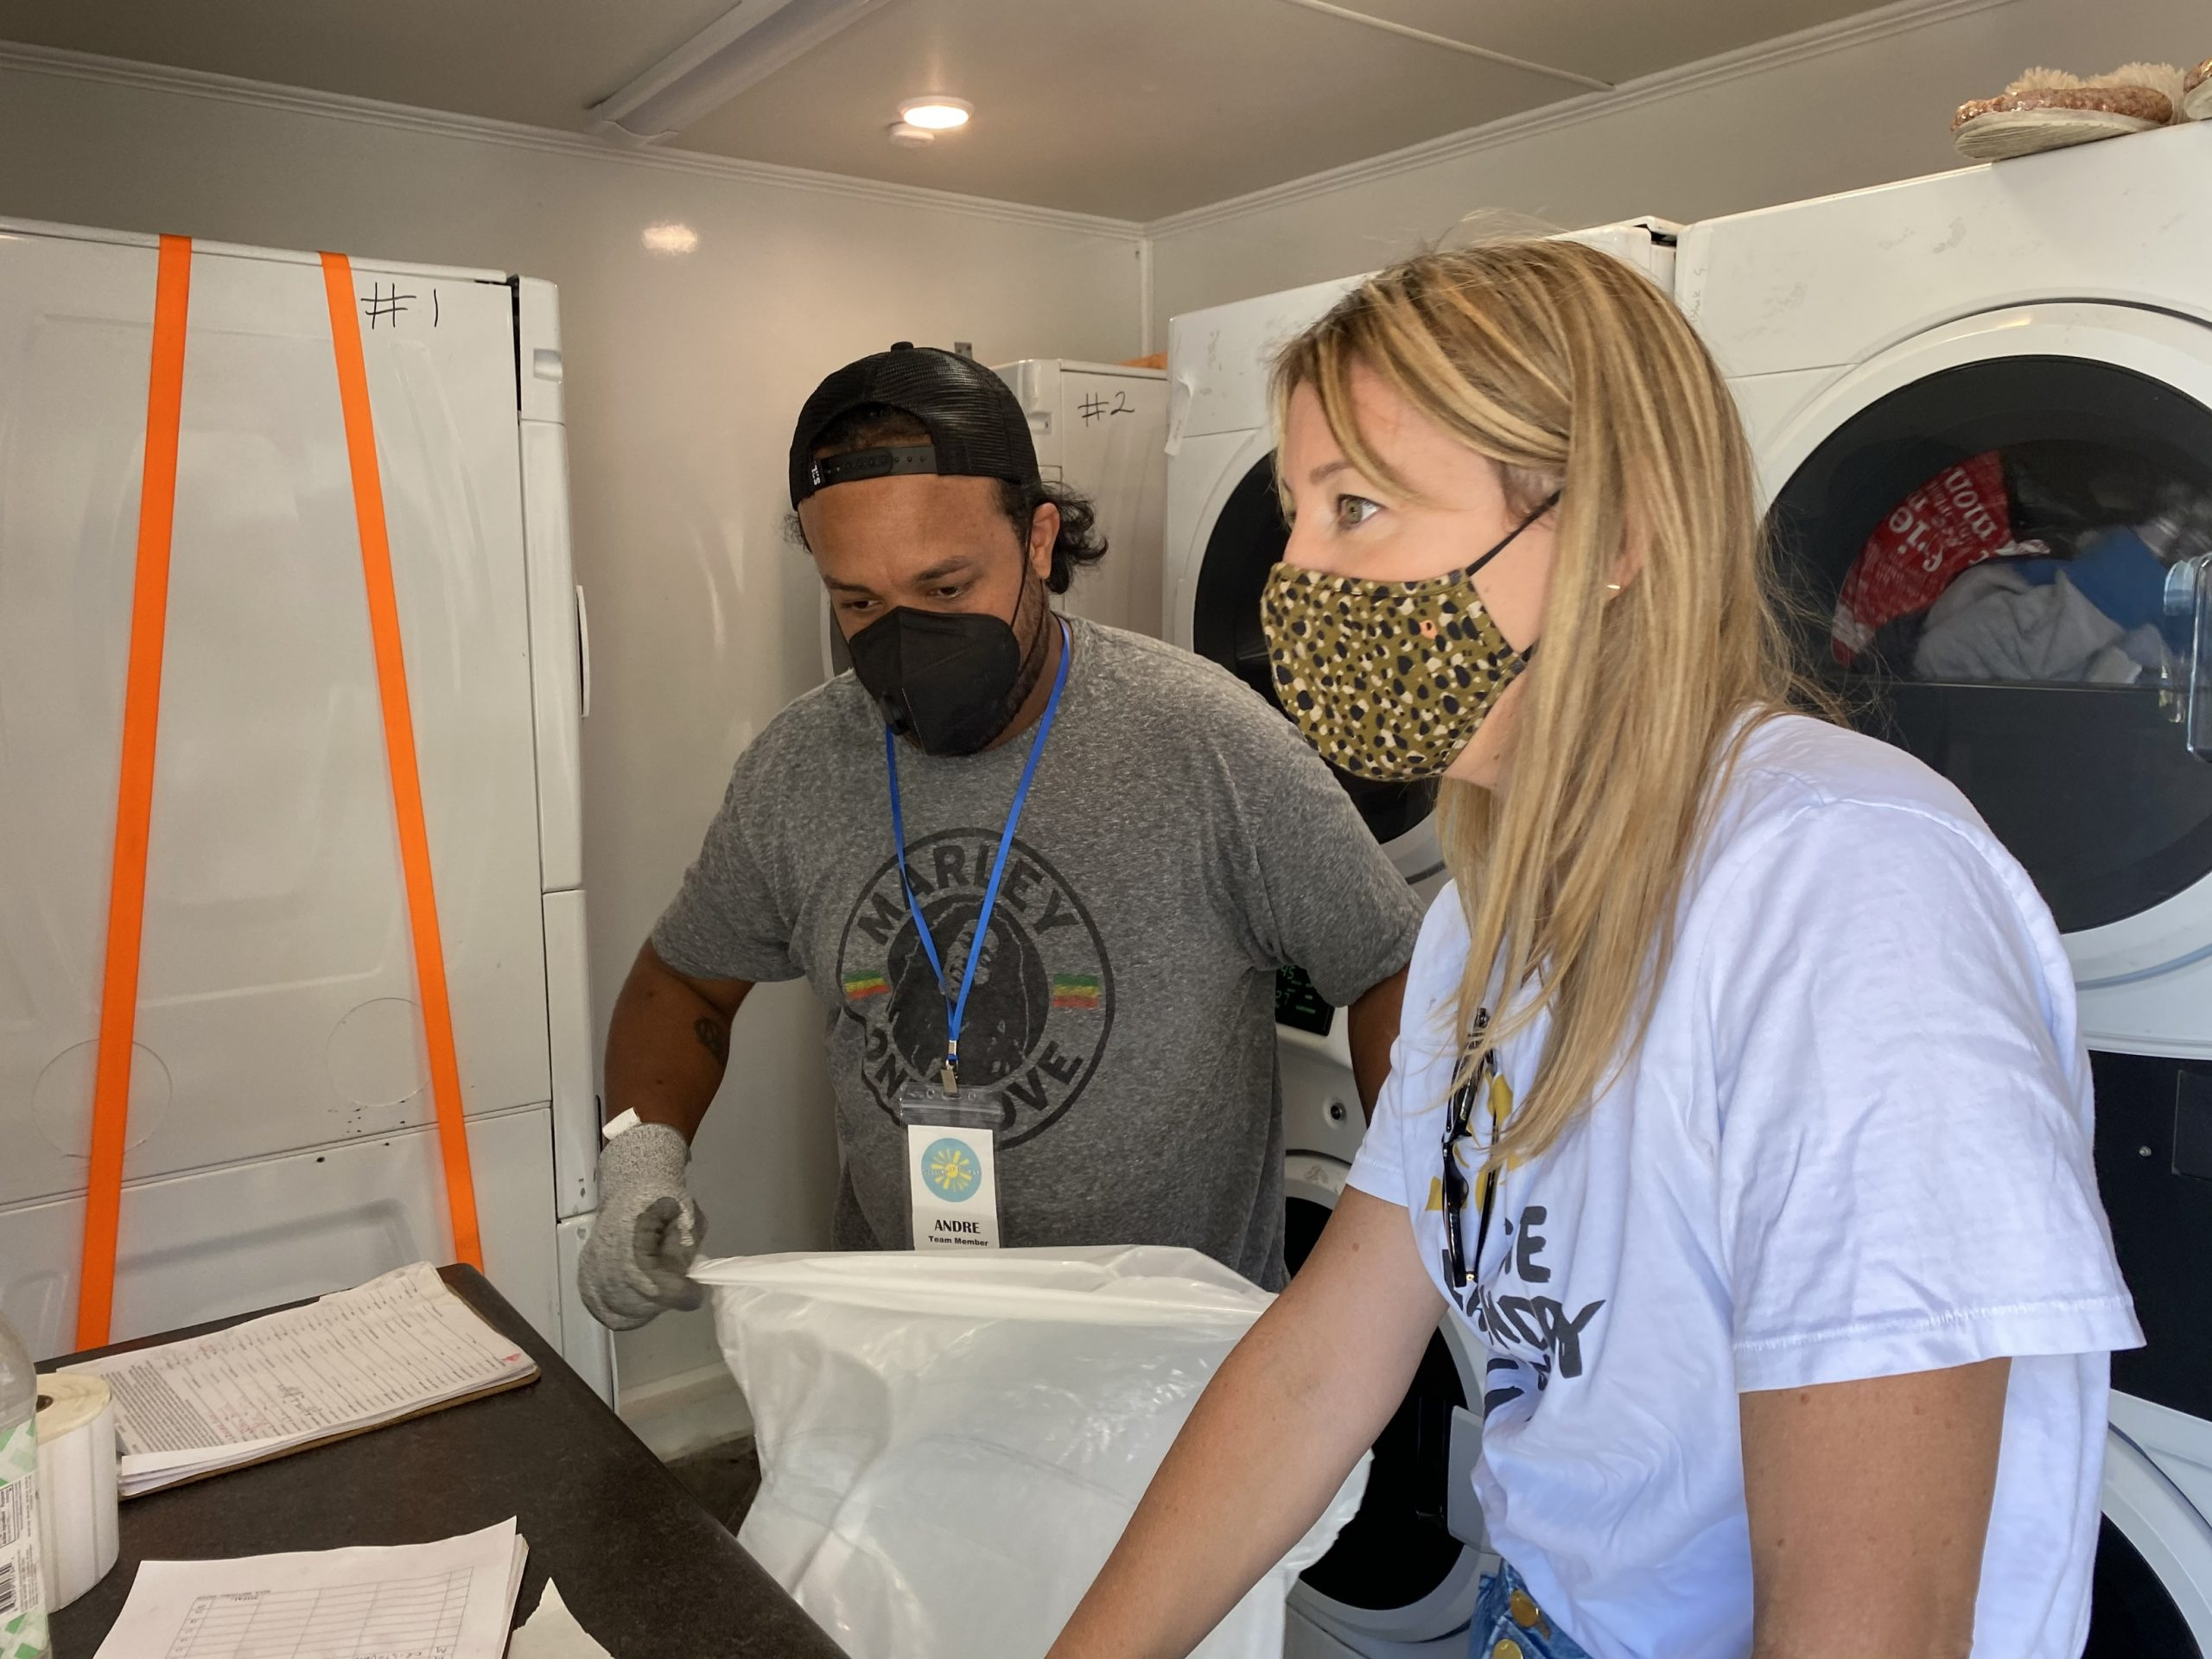 Jodie Dolan (right), the founder of The Laundry Truck LA, sorts clothes at a vaccination site at MacArthur Park. (Photo courtesy of The Laundry Truck LA.)